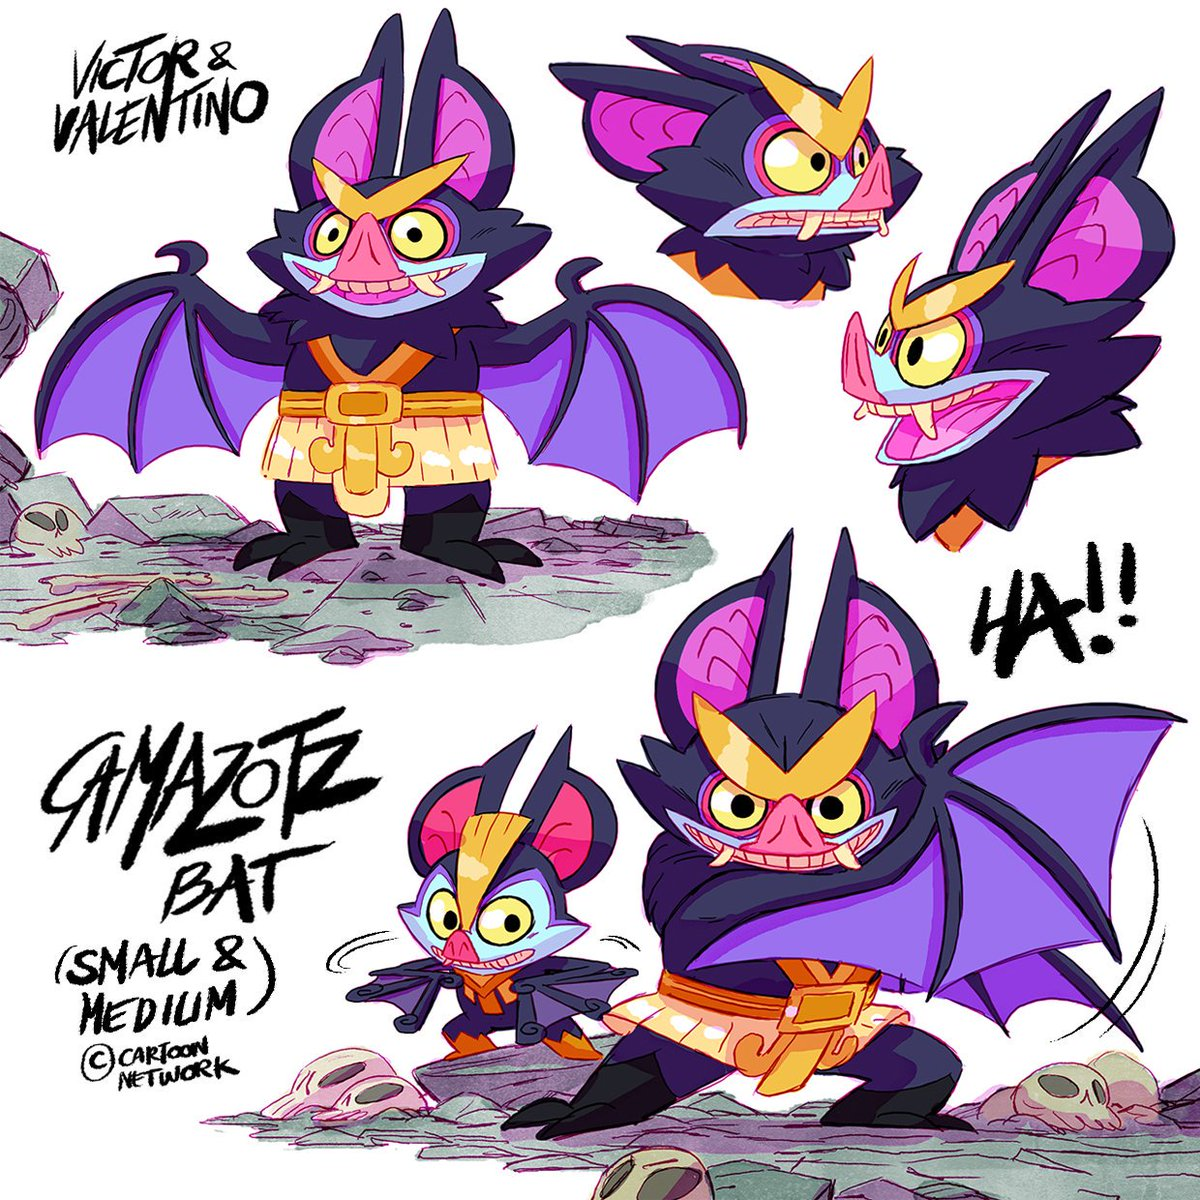 """Camazotz ! Gods of the night, death and Sacrifice. Erly research for """"Victor and Valentino"""" (Cartoon Network).  #victorandvalentino #CartoonNetwork #visdev #fabienmense<br>http://pic.twitter.com/t3QUOBARQm"""